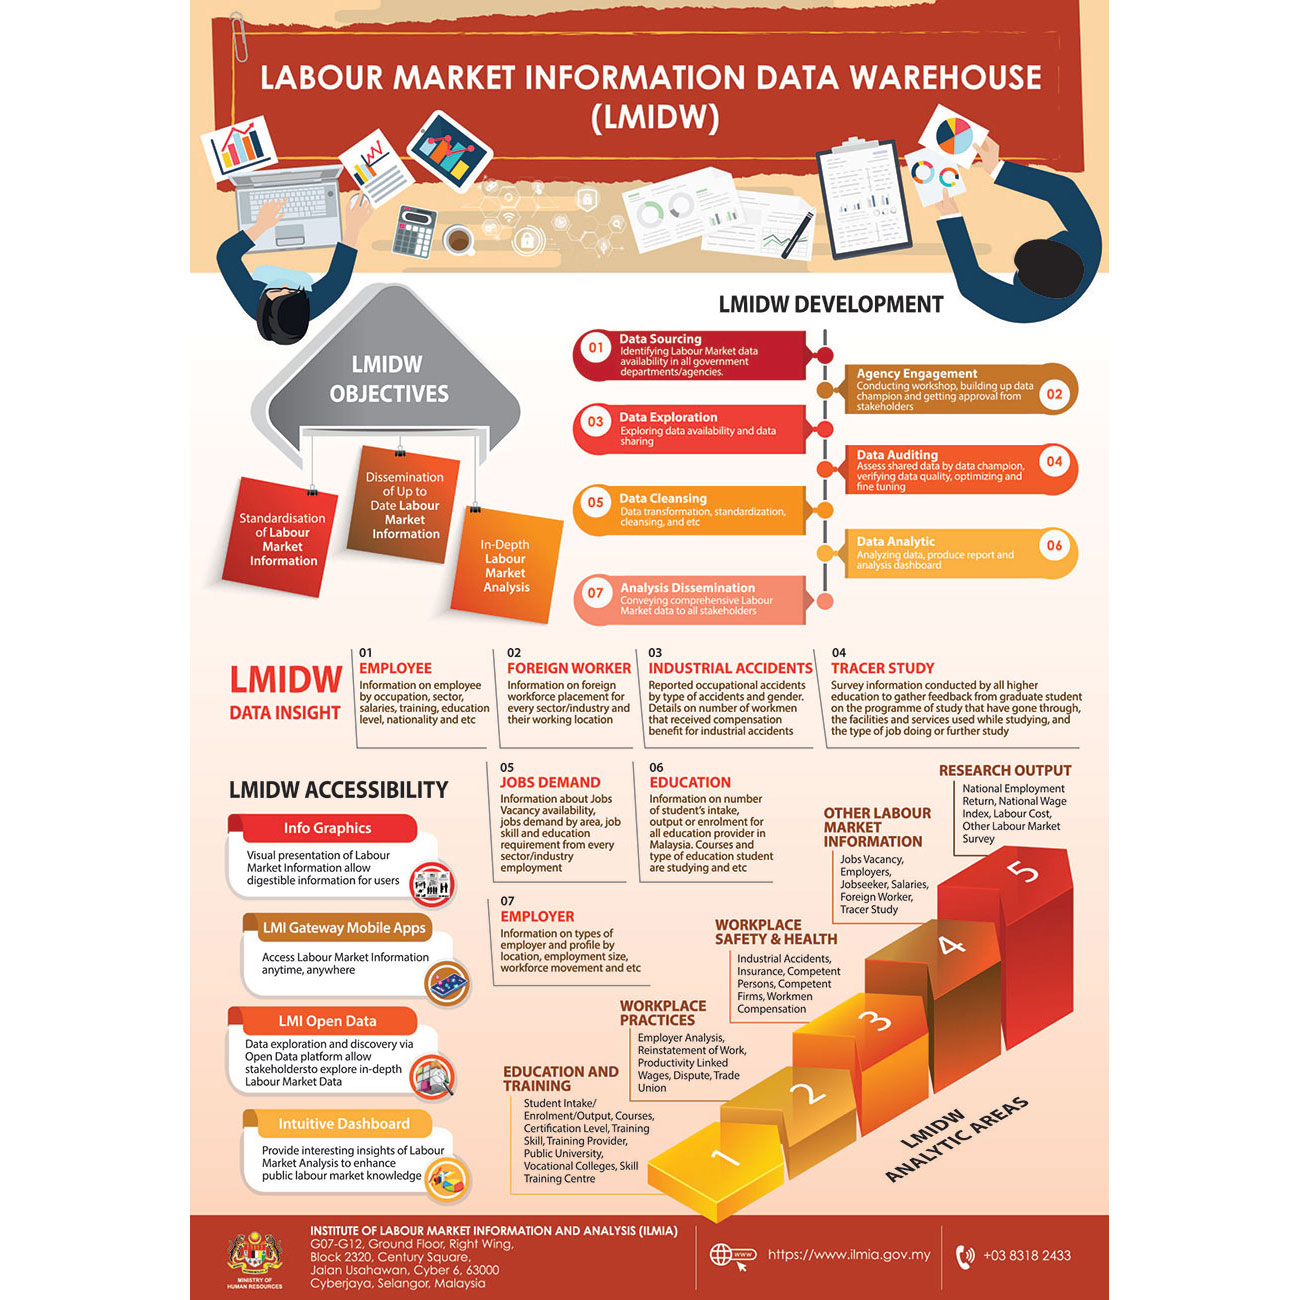 FINAL 10 A1 Labour Market Information Data Warehouse LMIDW 01